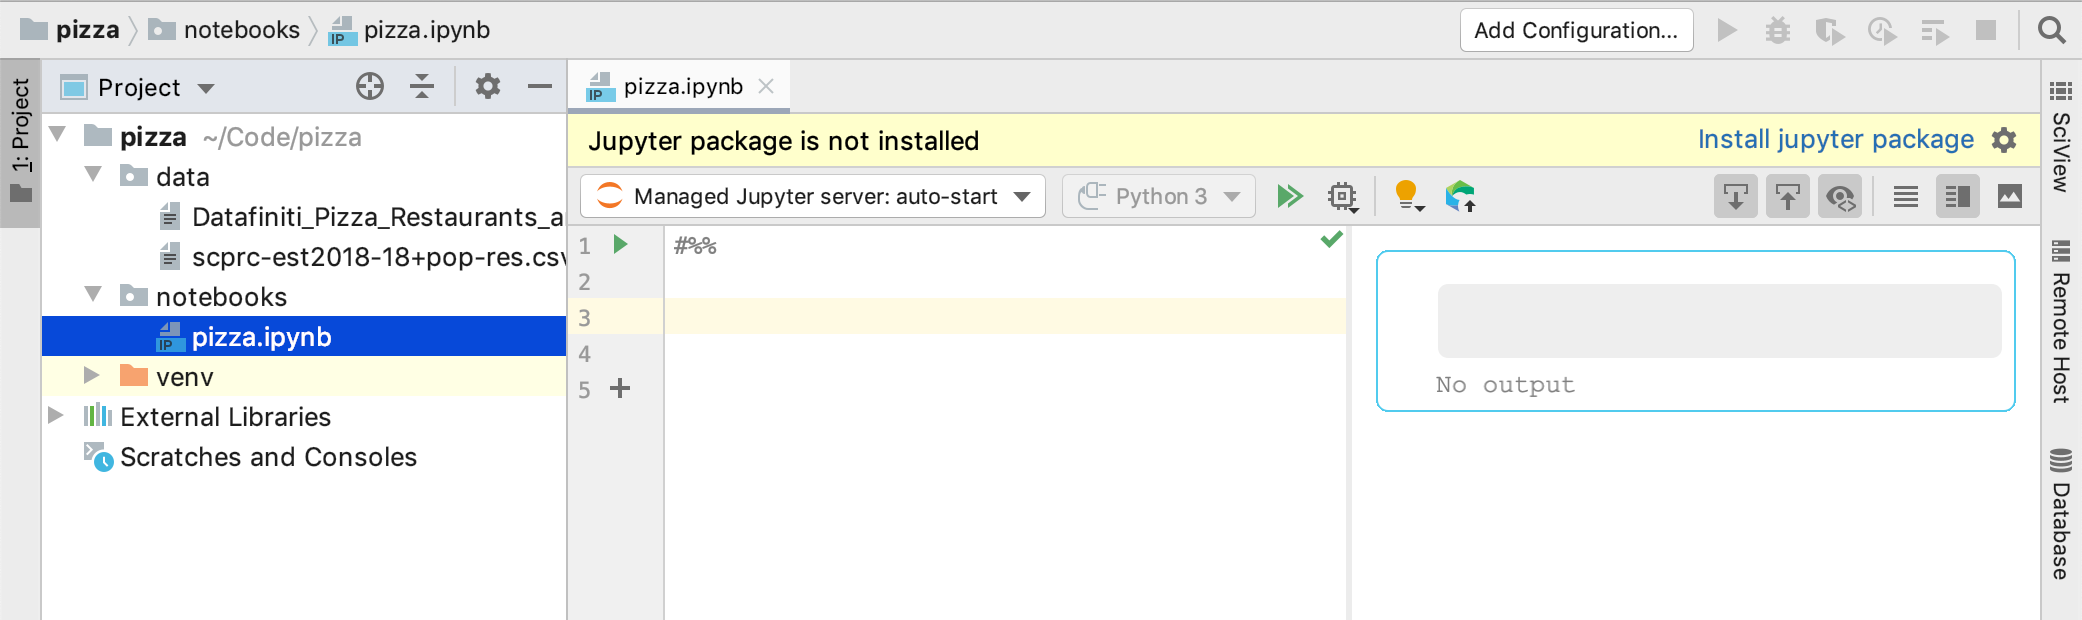 Install Jupyter package